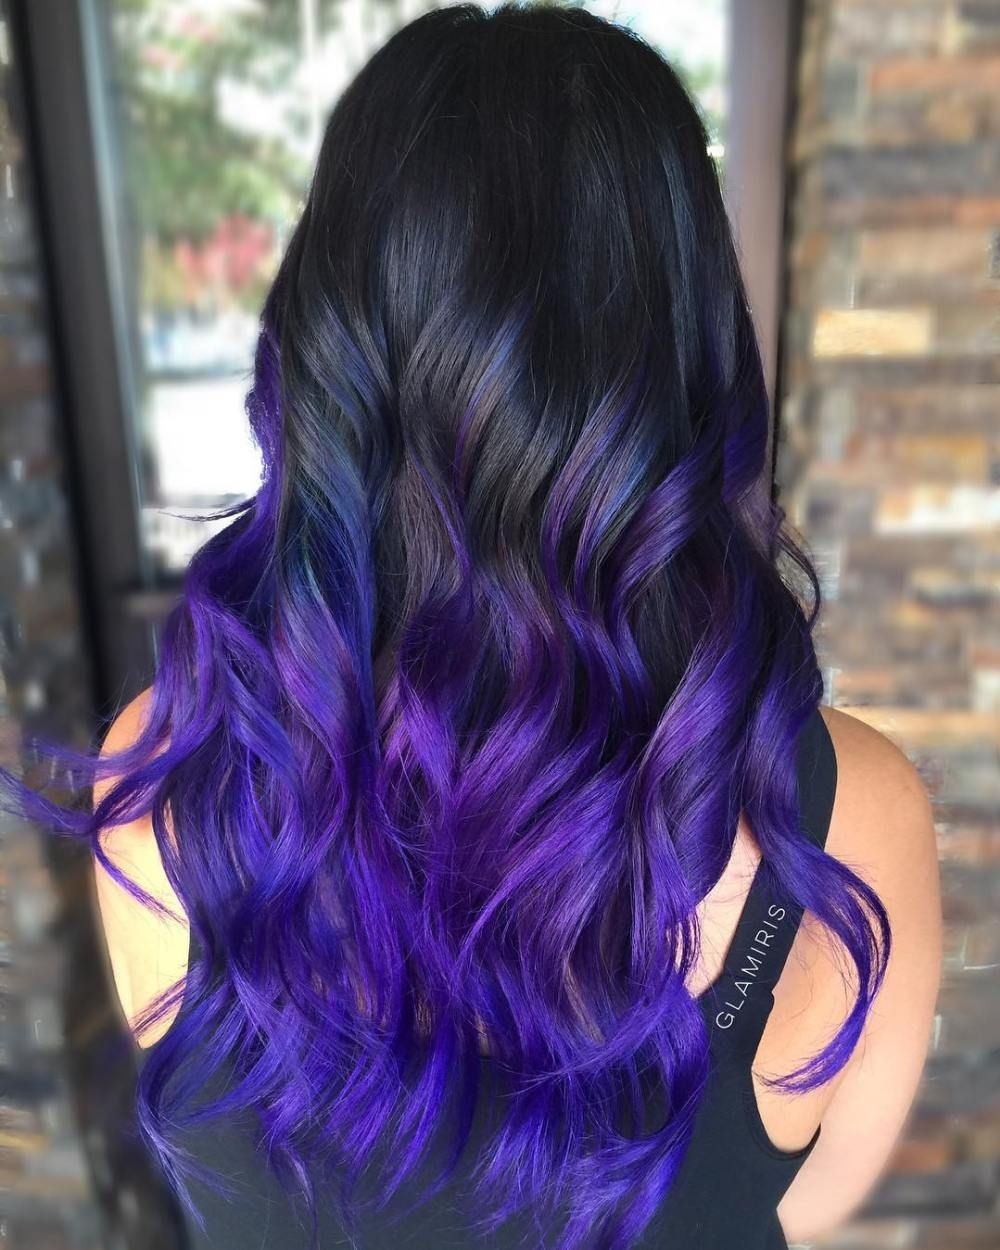 20 Ways To Wear Violet Hair In 2019 Hair Styles To Try Violet